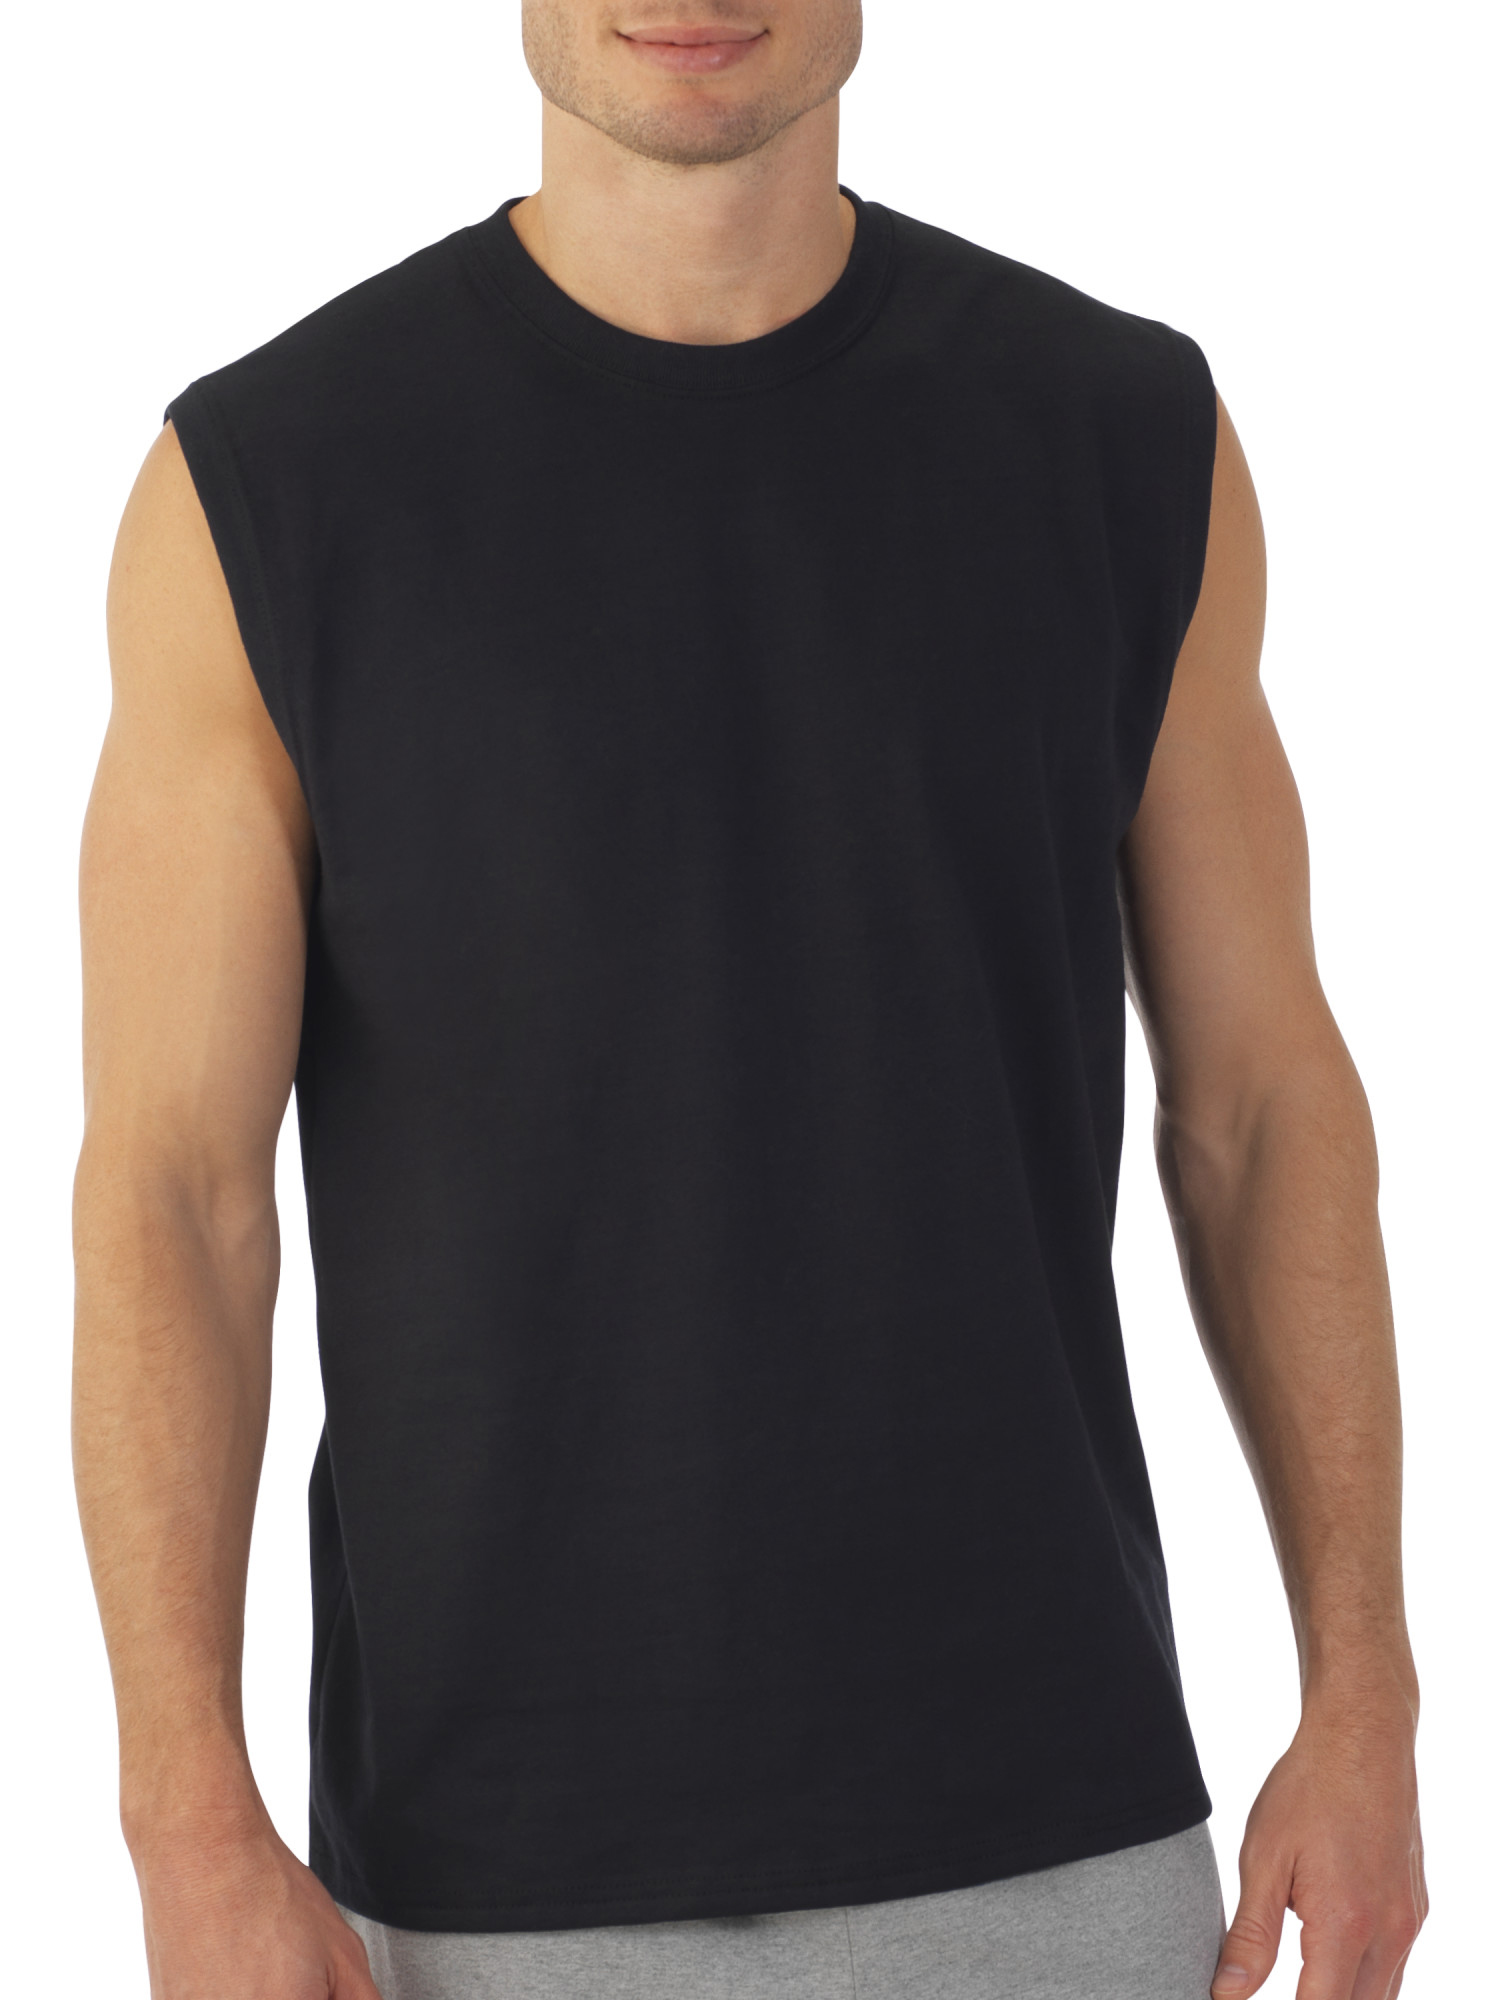 Fruit of the Loom - Men's Dual Defense UPF Muscle Shirt, Available